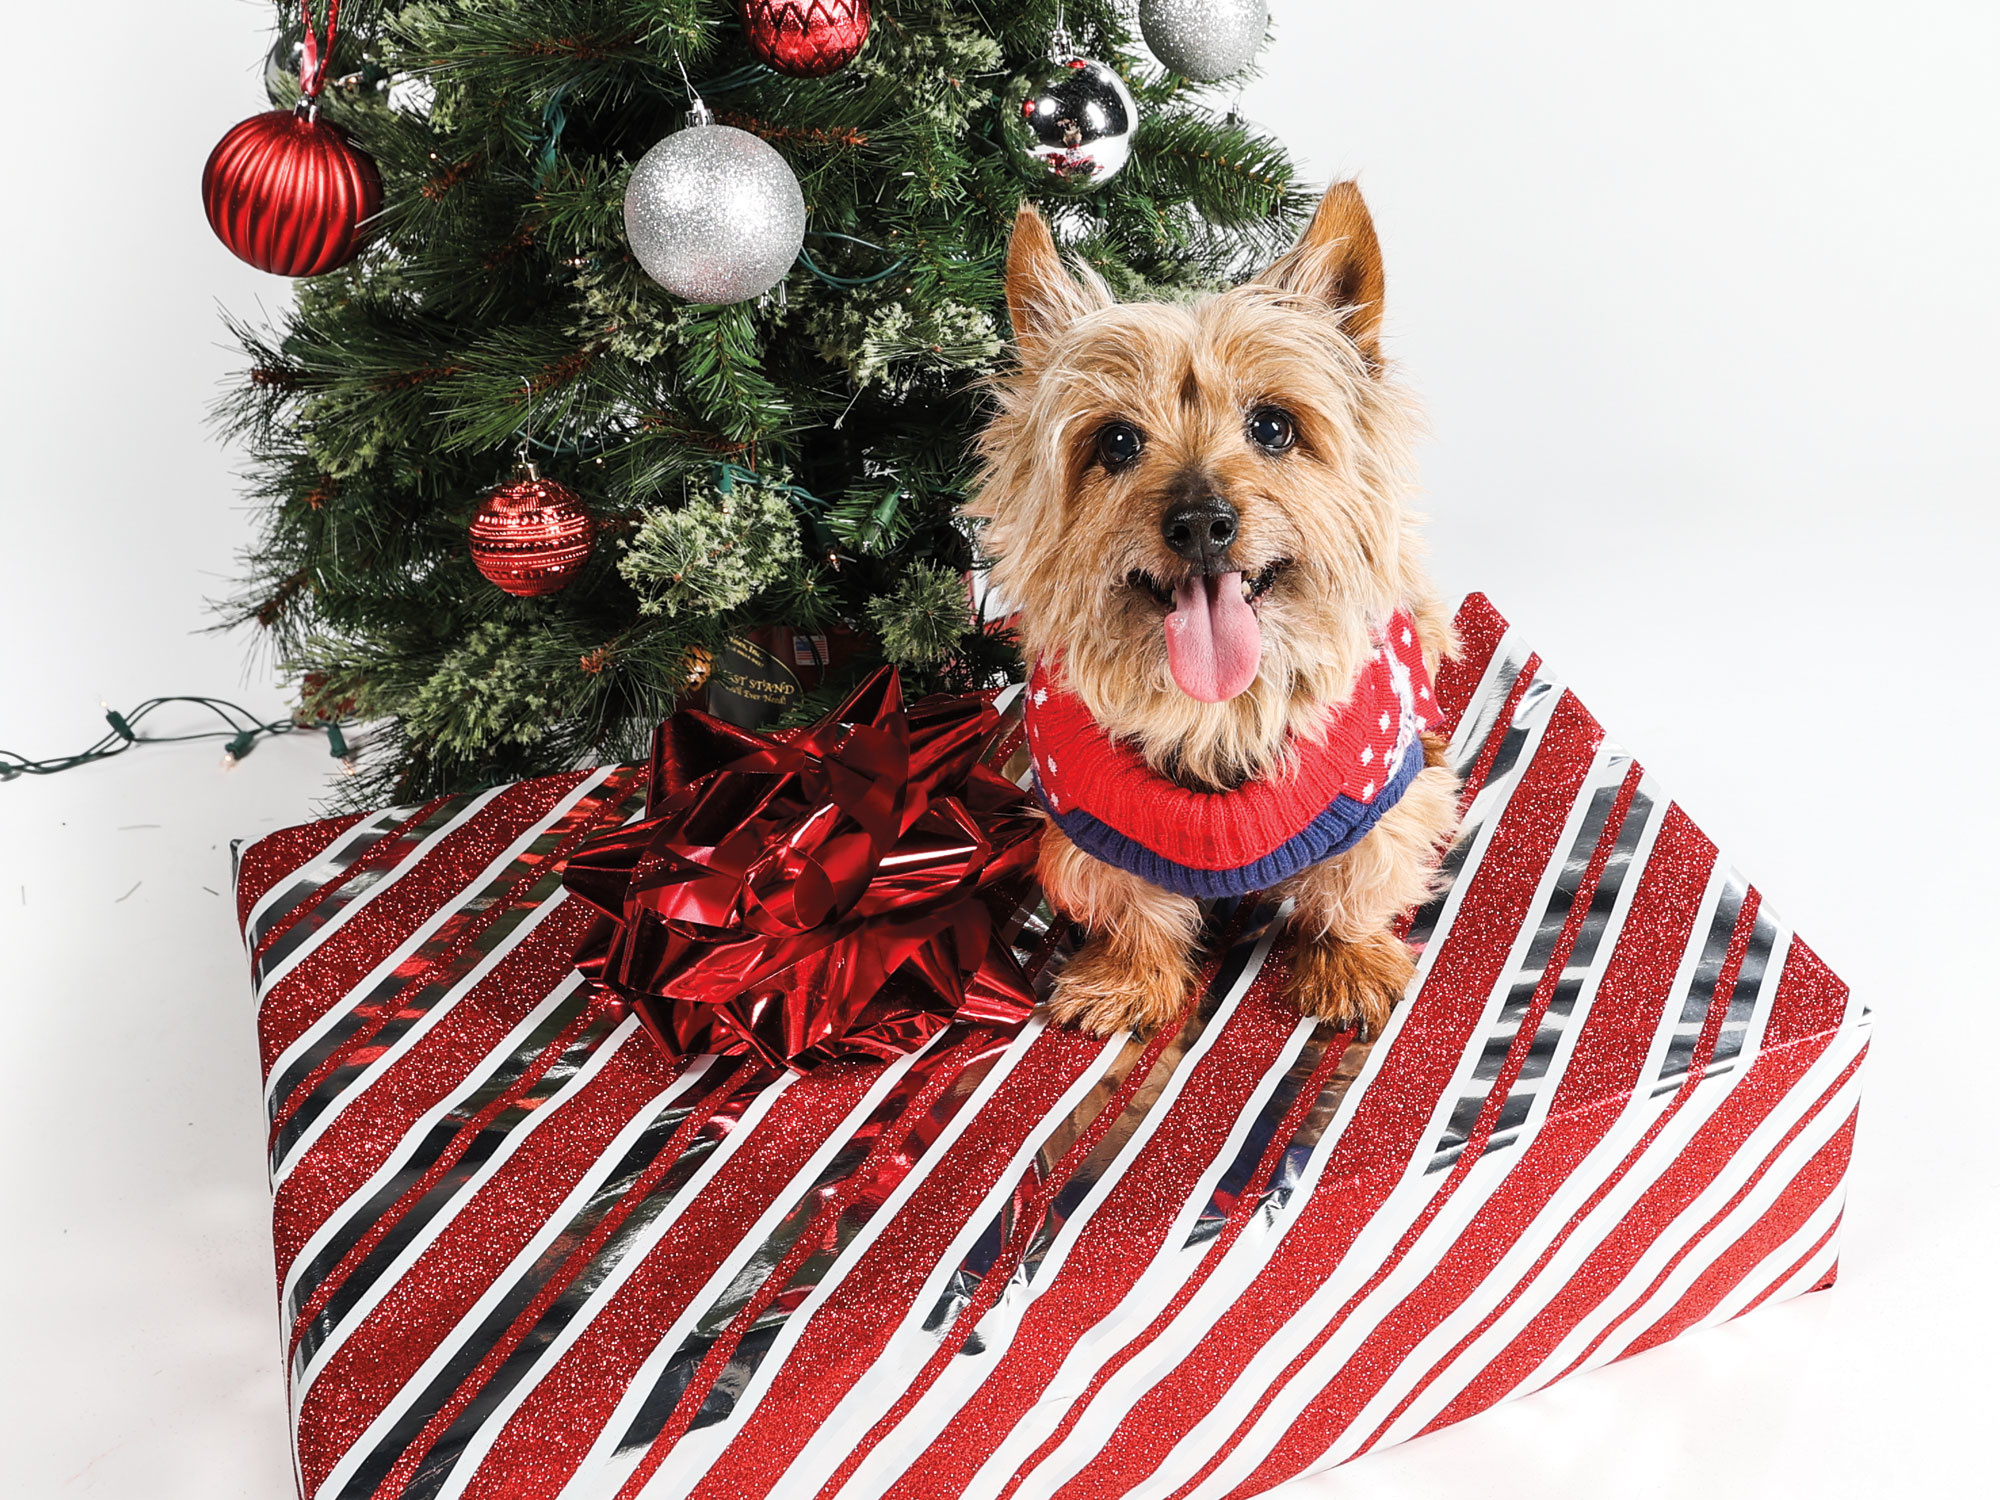 Pet safety tips during the holidays